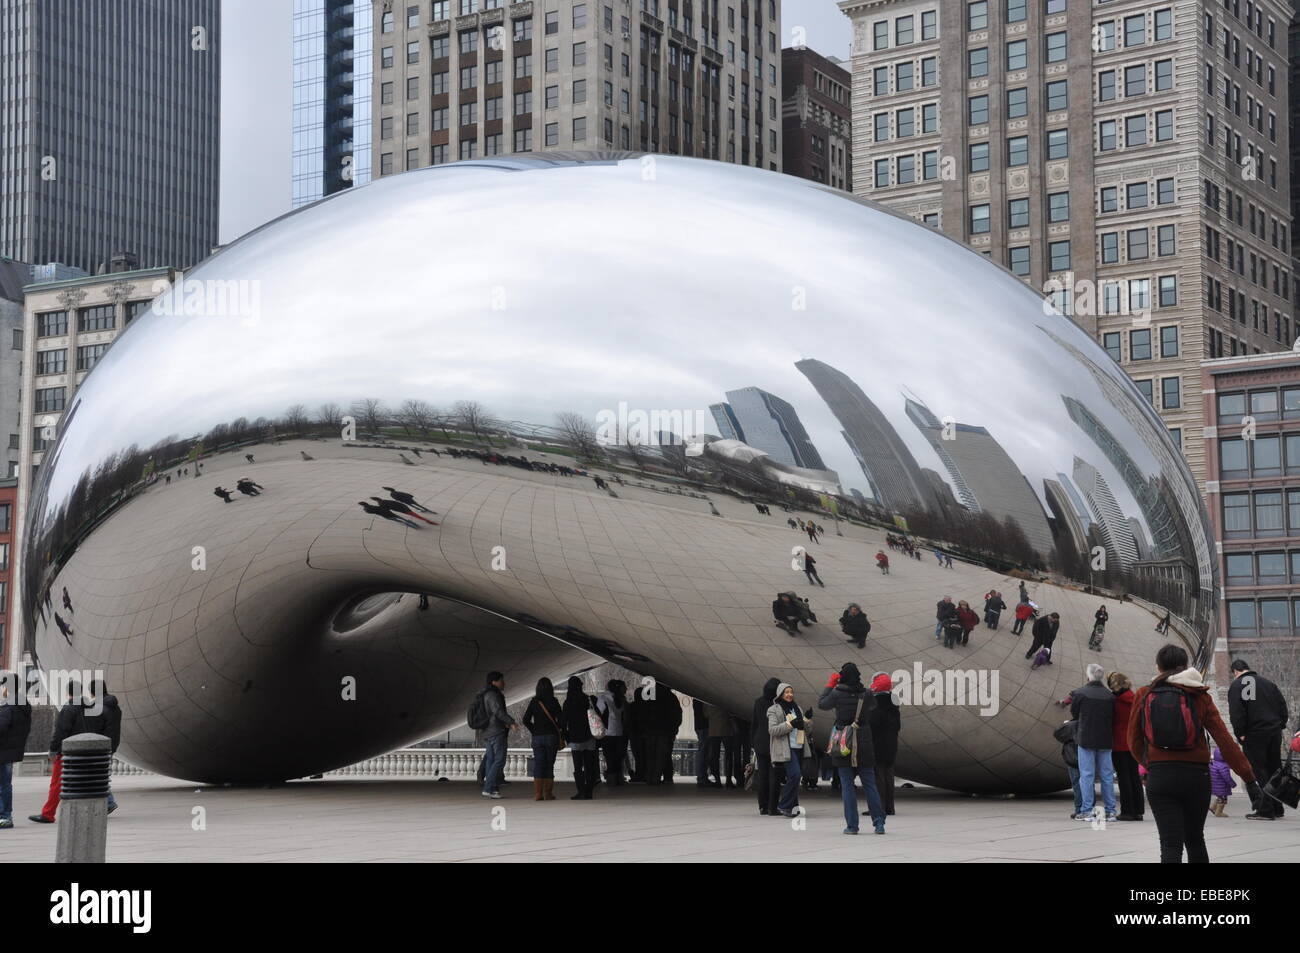 cloud-gate-stainless-steel-sculpture-reflecting-visitors-and-chicago-EBE8PK.jpg